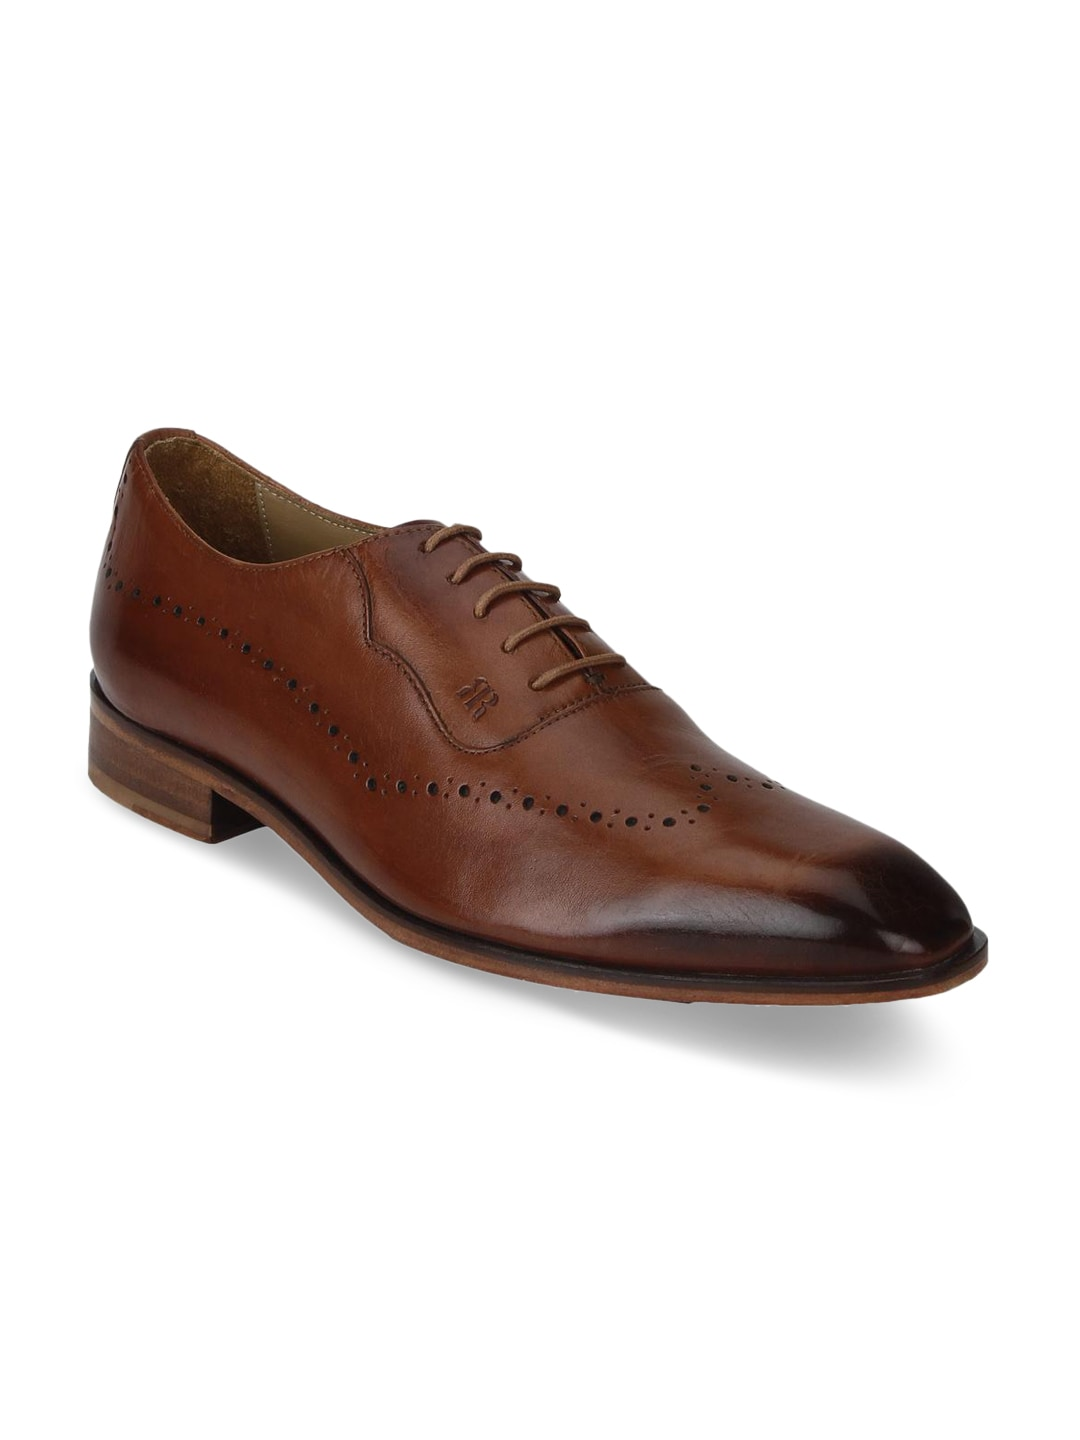 Raymond Men Brown Leather Oxfords image